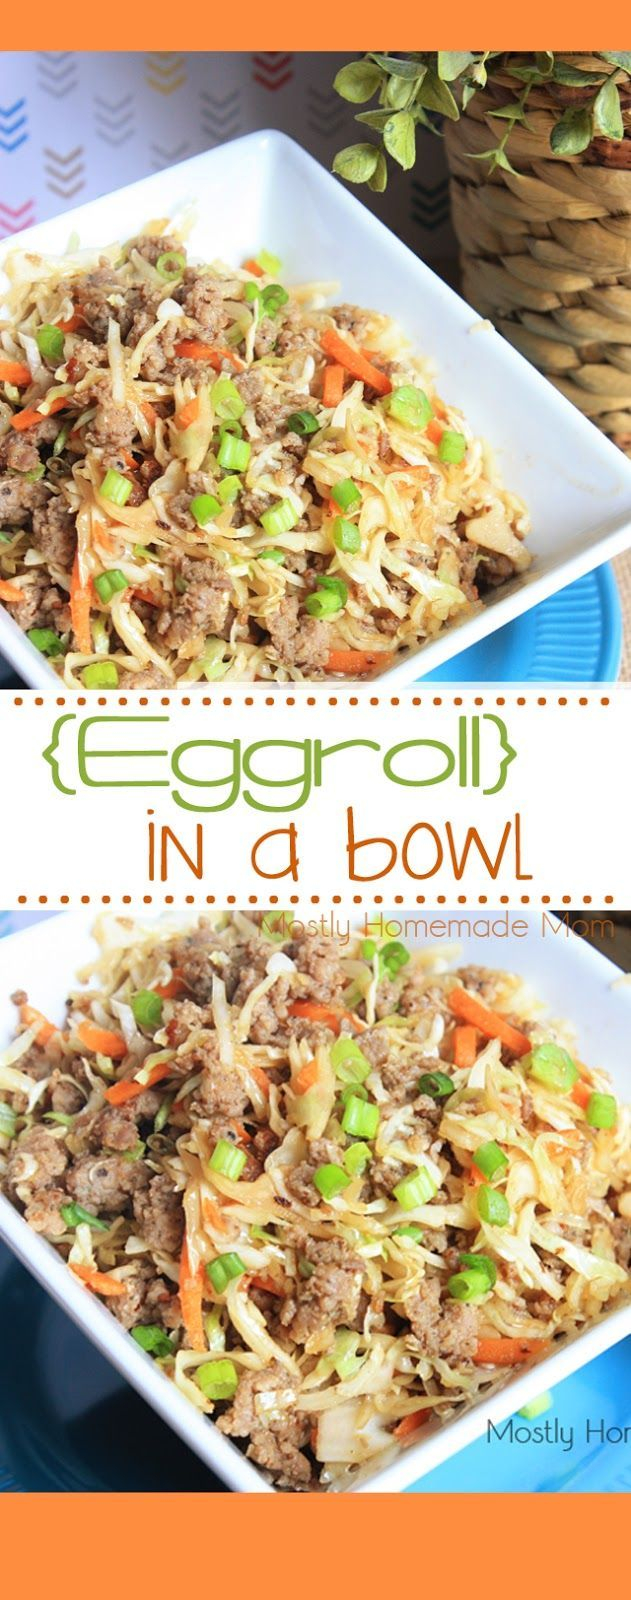 Eggroll In A Bowl - Double the slaw mix and maybe use low sodium soy sauce.  Would be great as filler for lettuce wraps! Delish